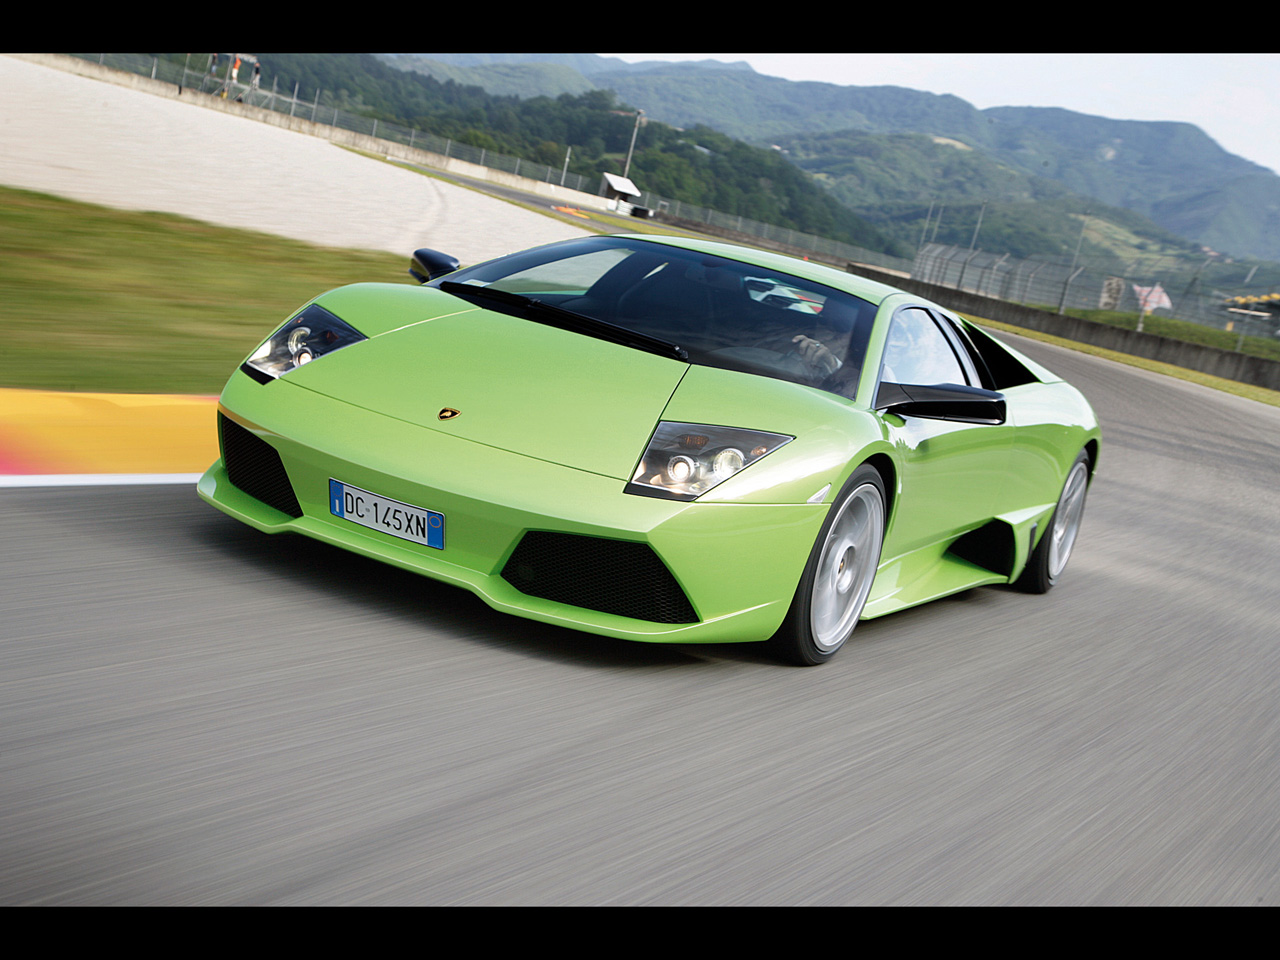 Lamborghini Murcielago LP640 - Green Front Angle Speed - 1280x960 - Wallpaper